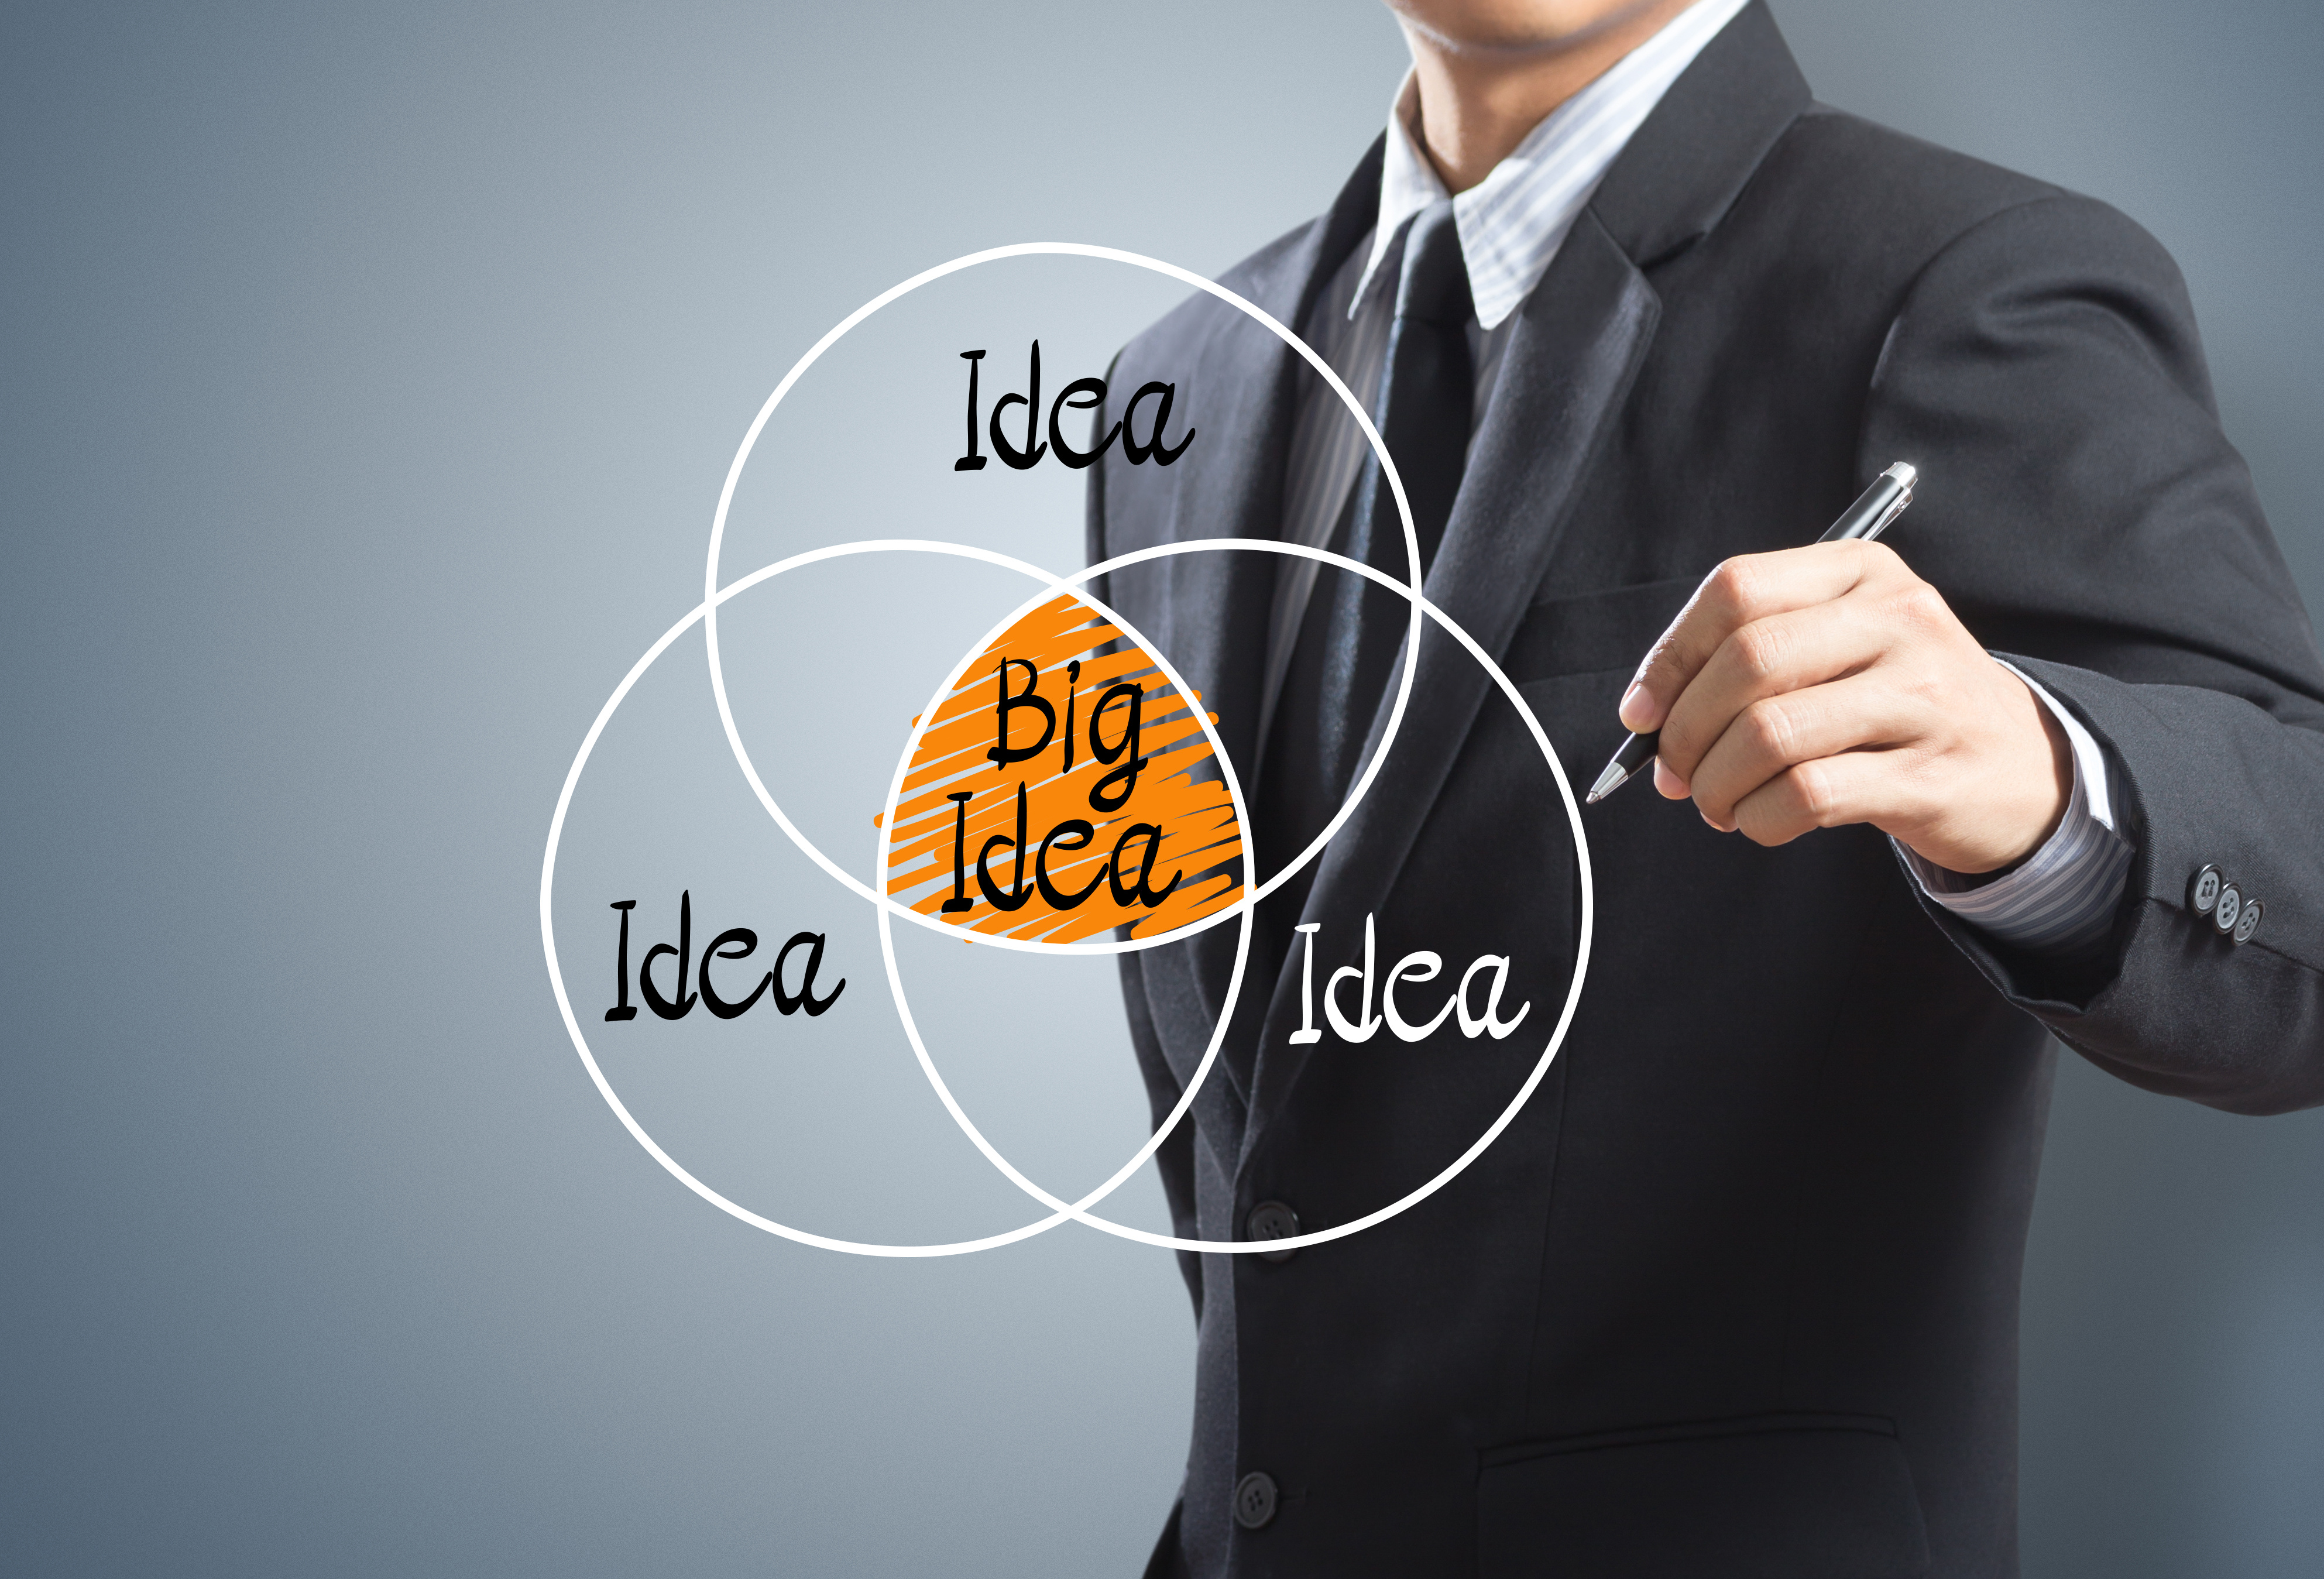 Your Brand Promise - Why You Need a Big Idea! - B2B Marketing Blog